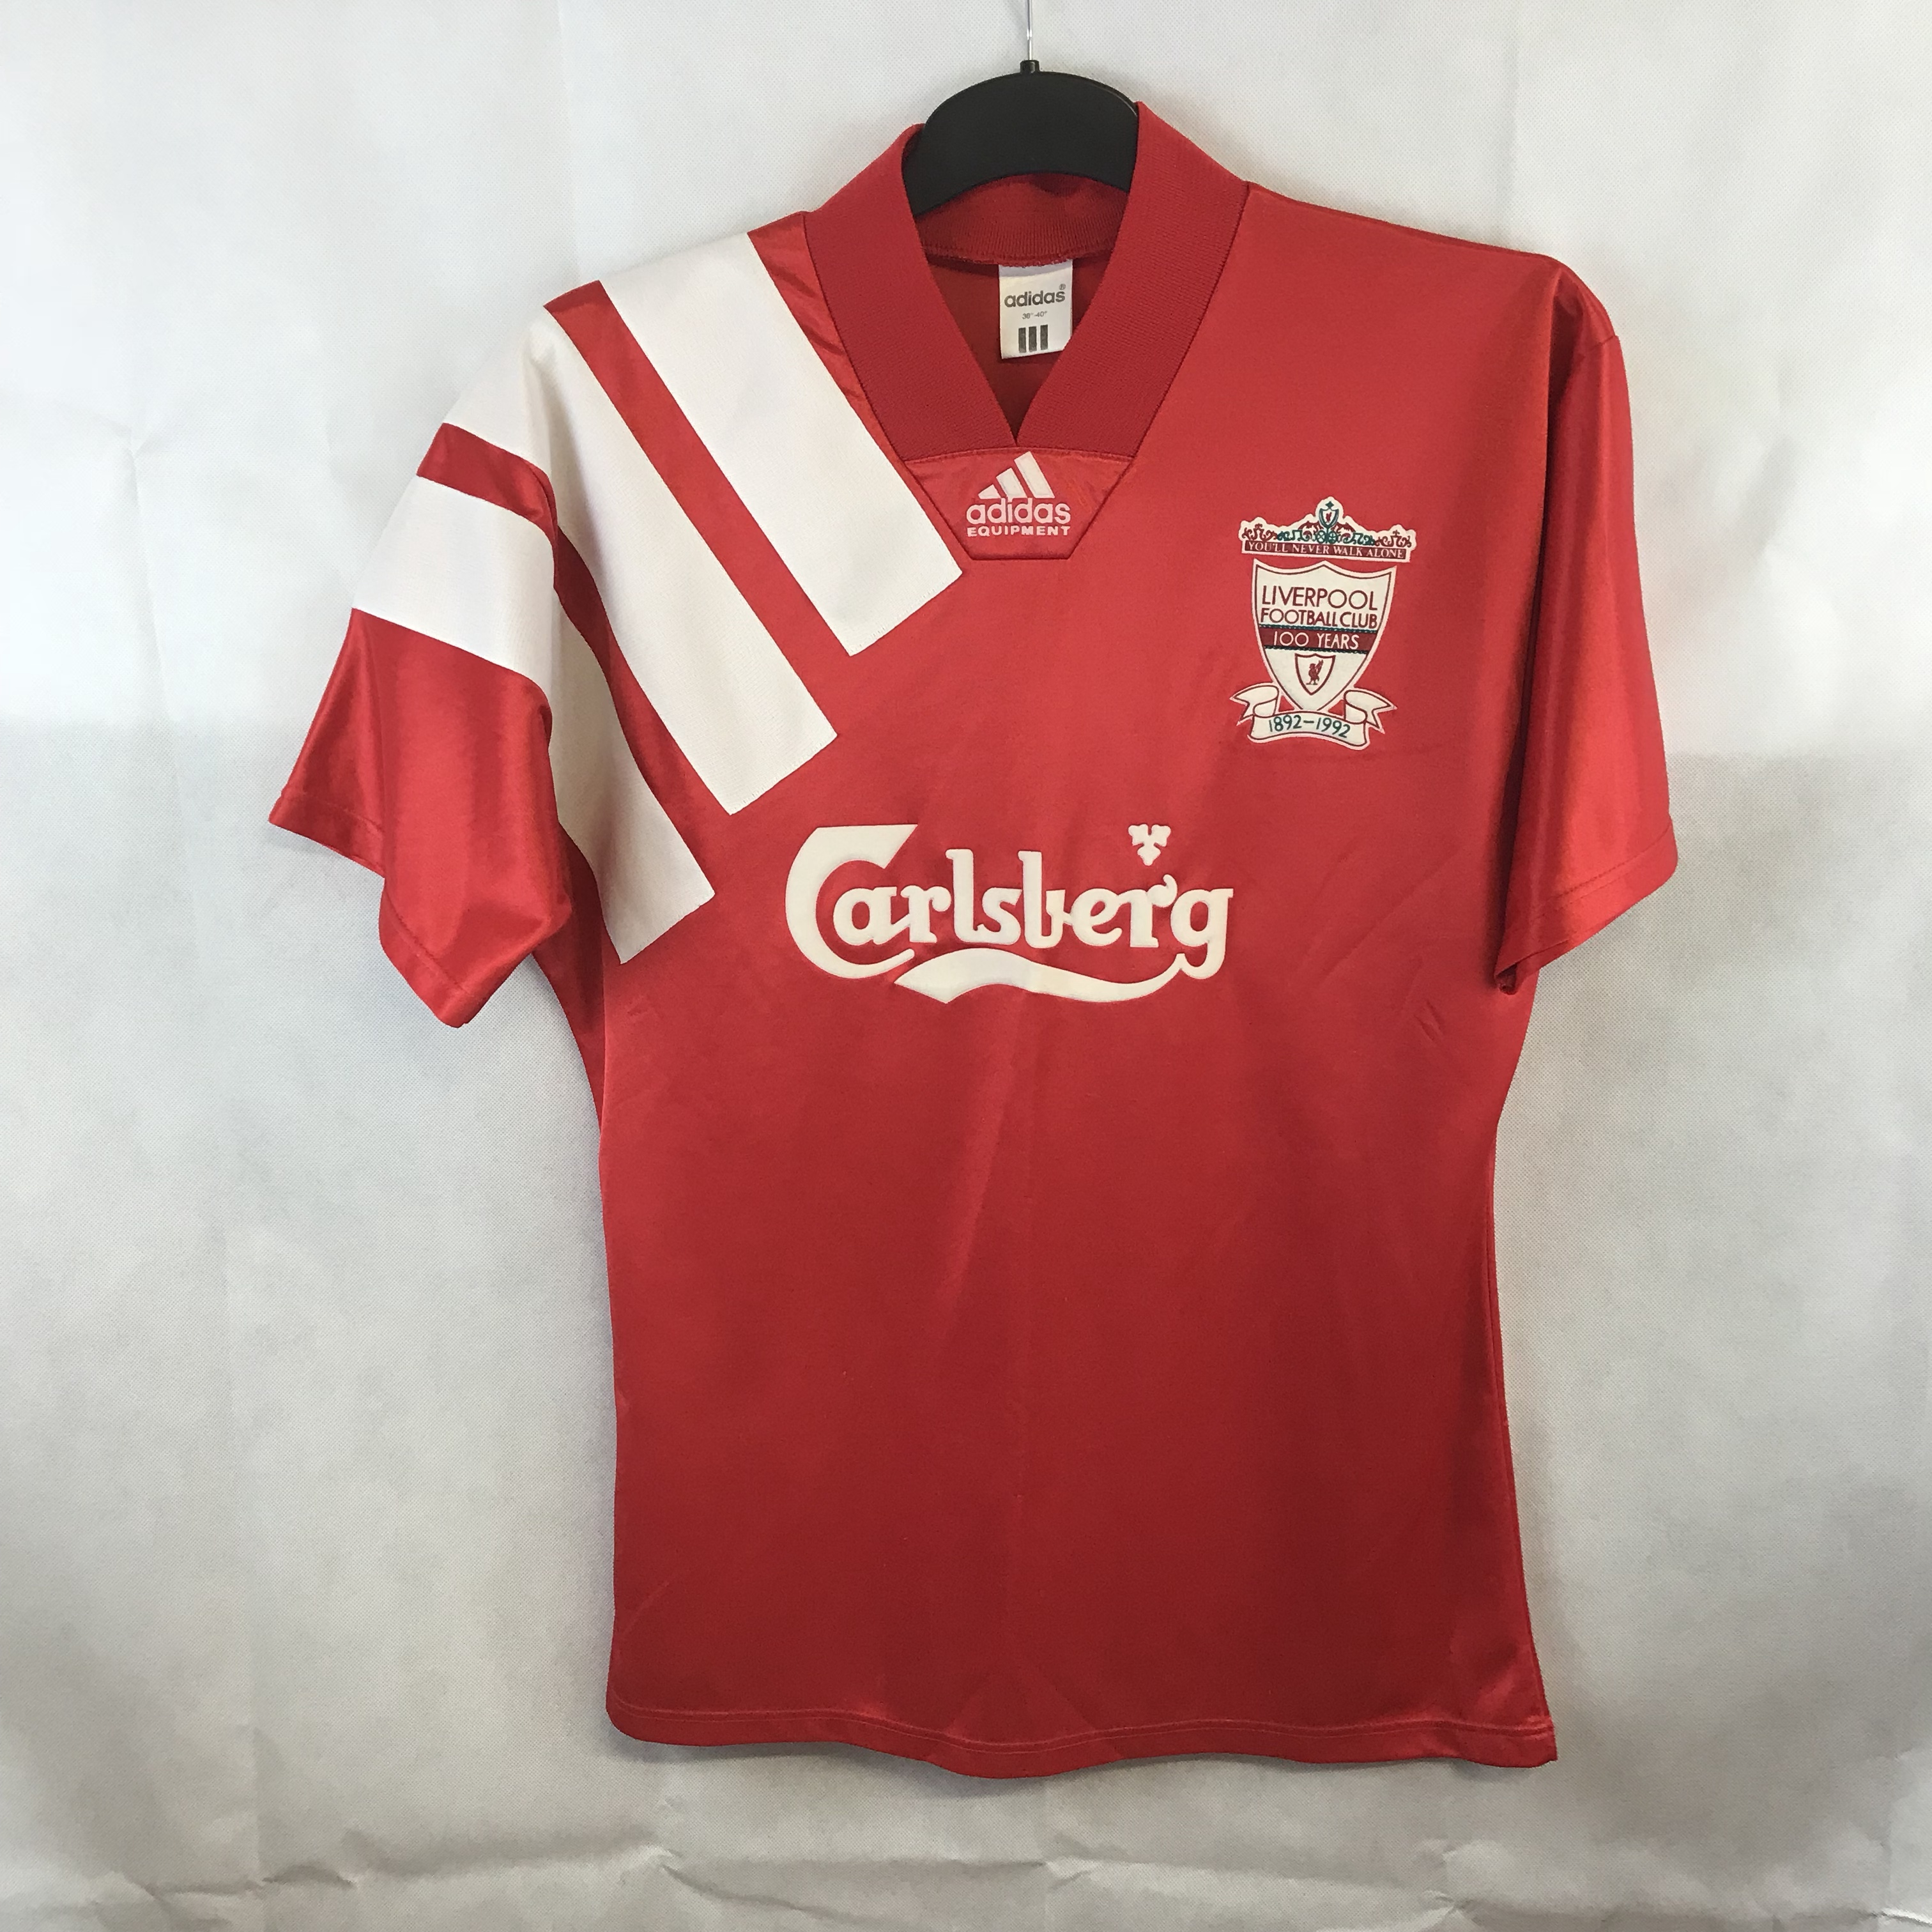 meet a7e7a 45461 Liverpool Centenary Football Shirt 1992/93 Adults... - Depop